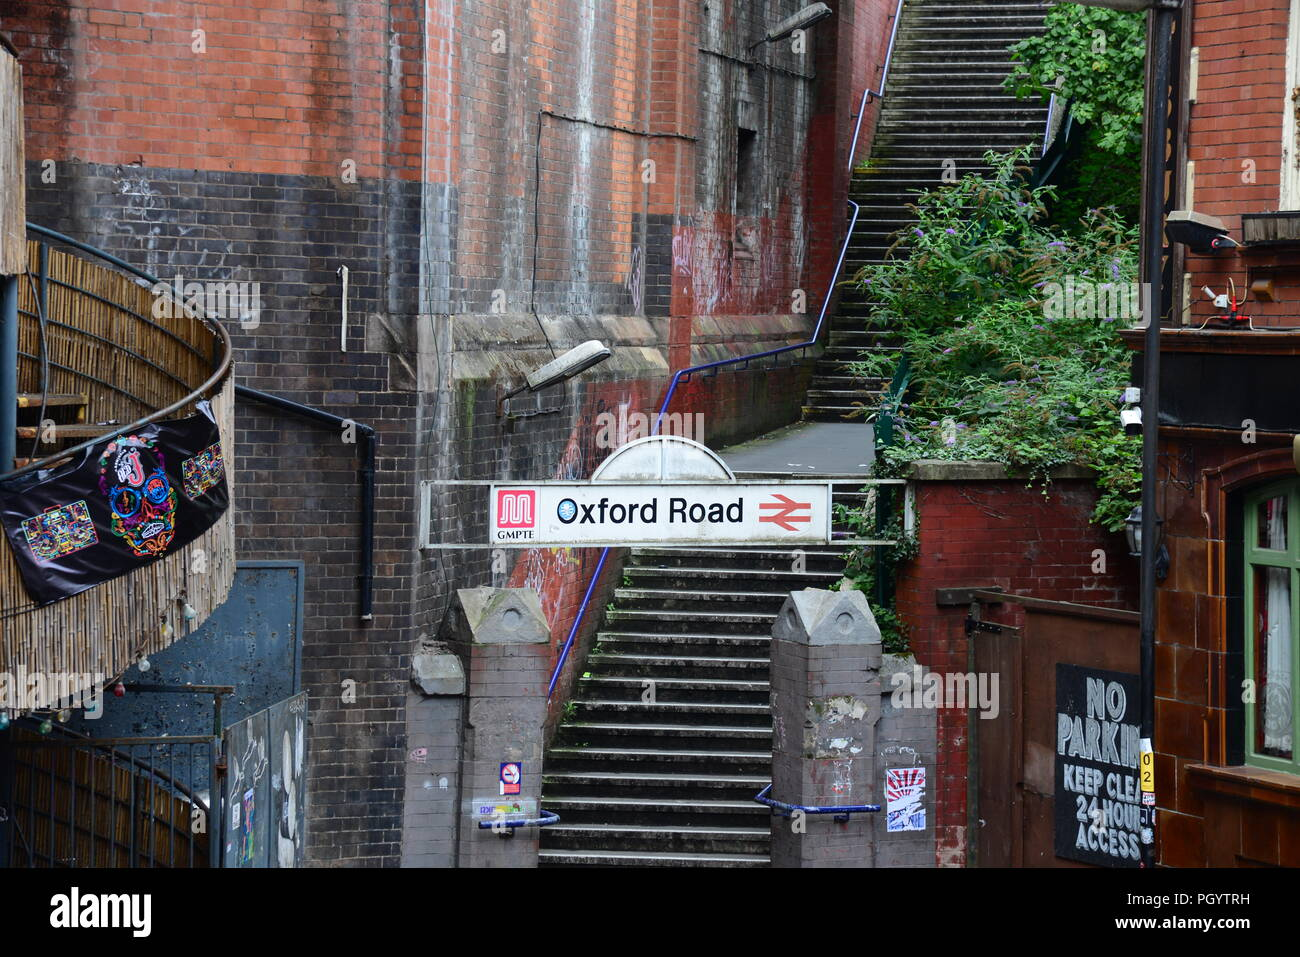 Oxford Road station Manchester - Stock Image